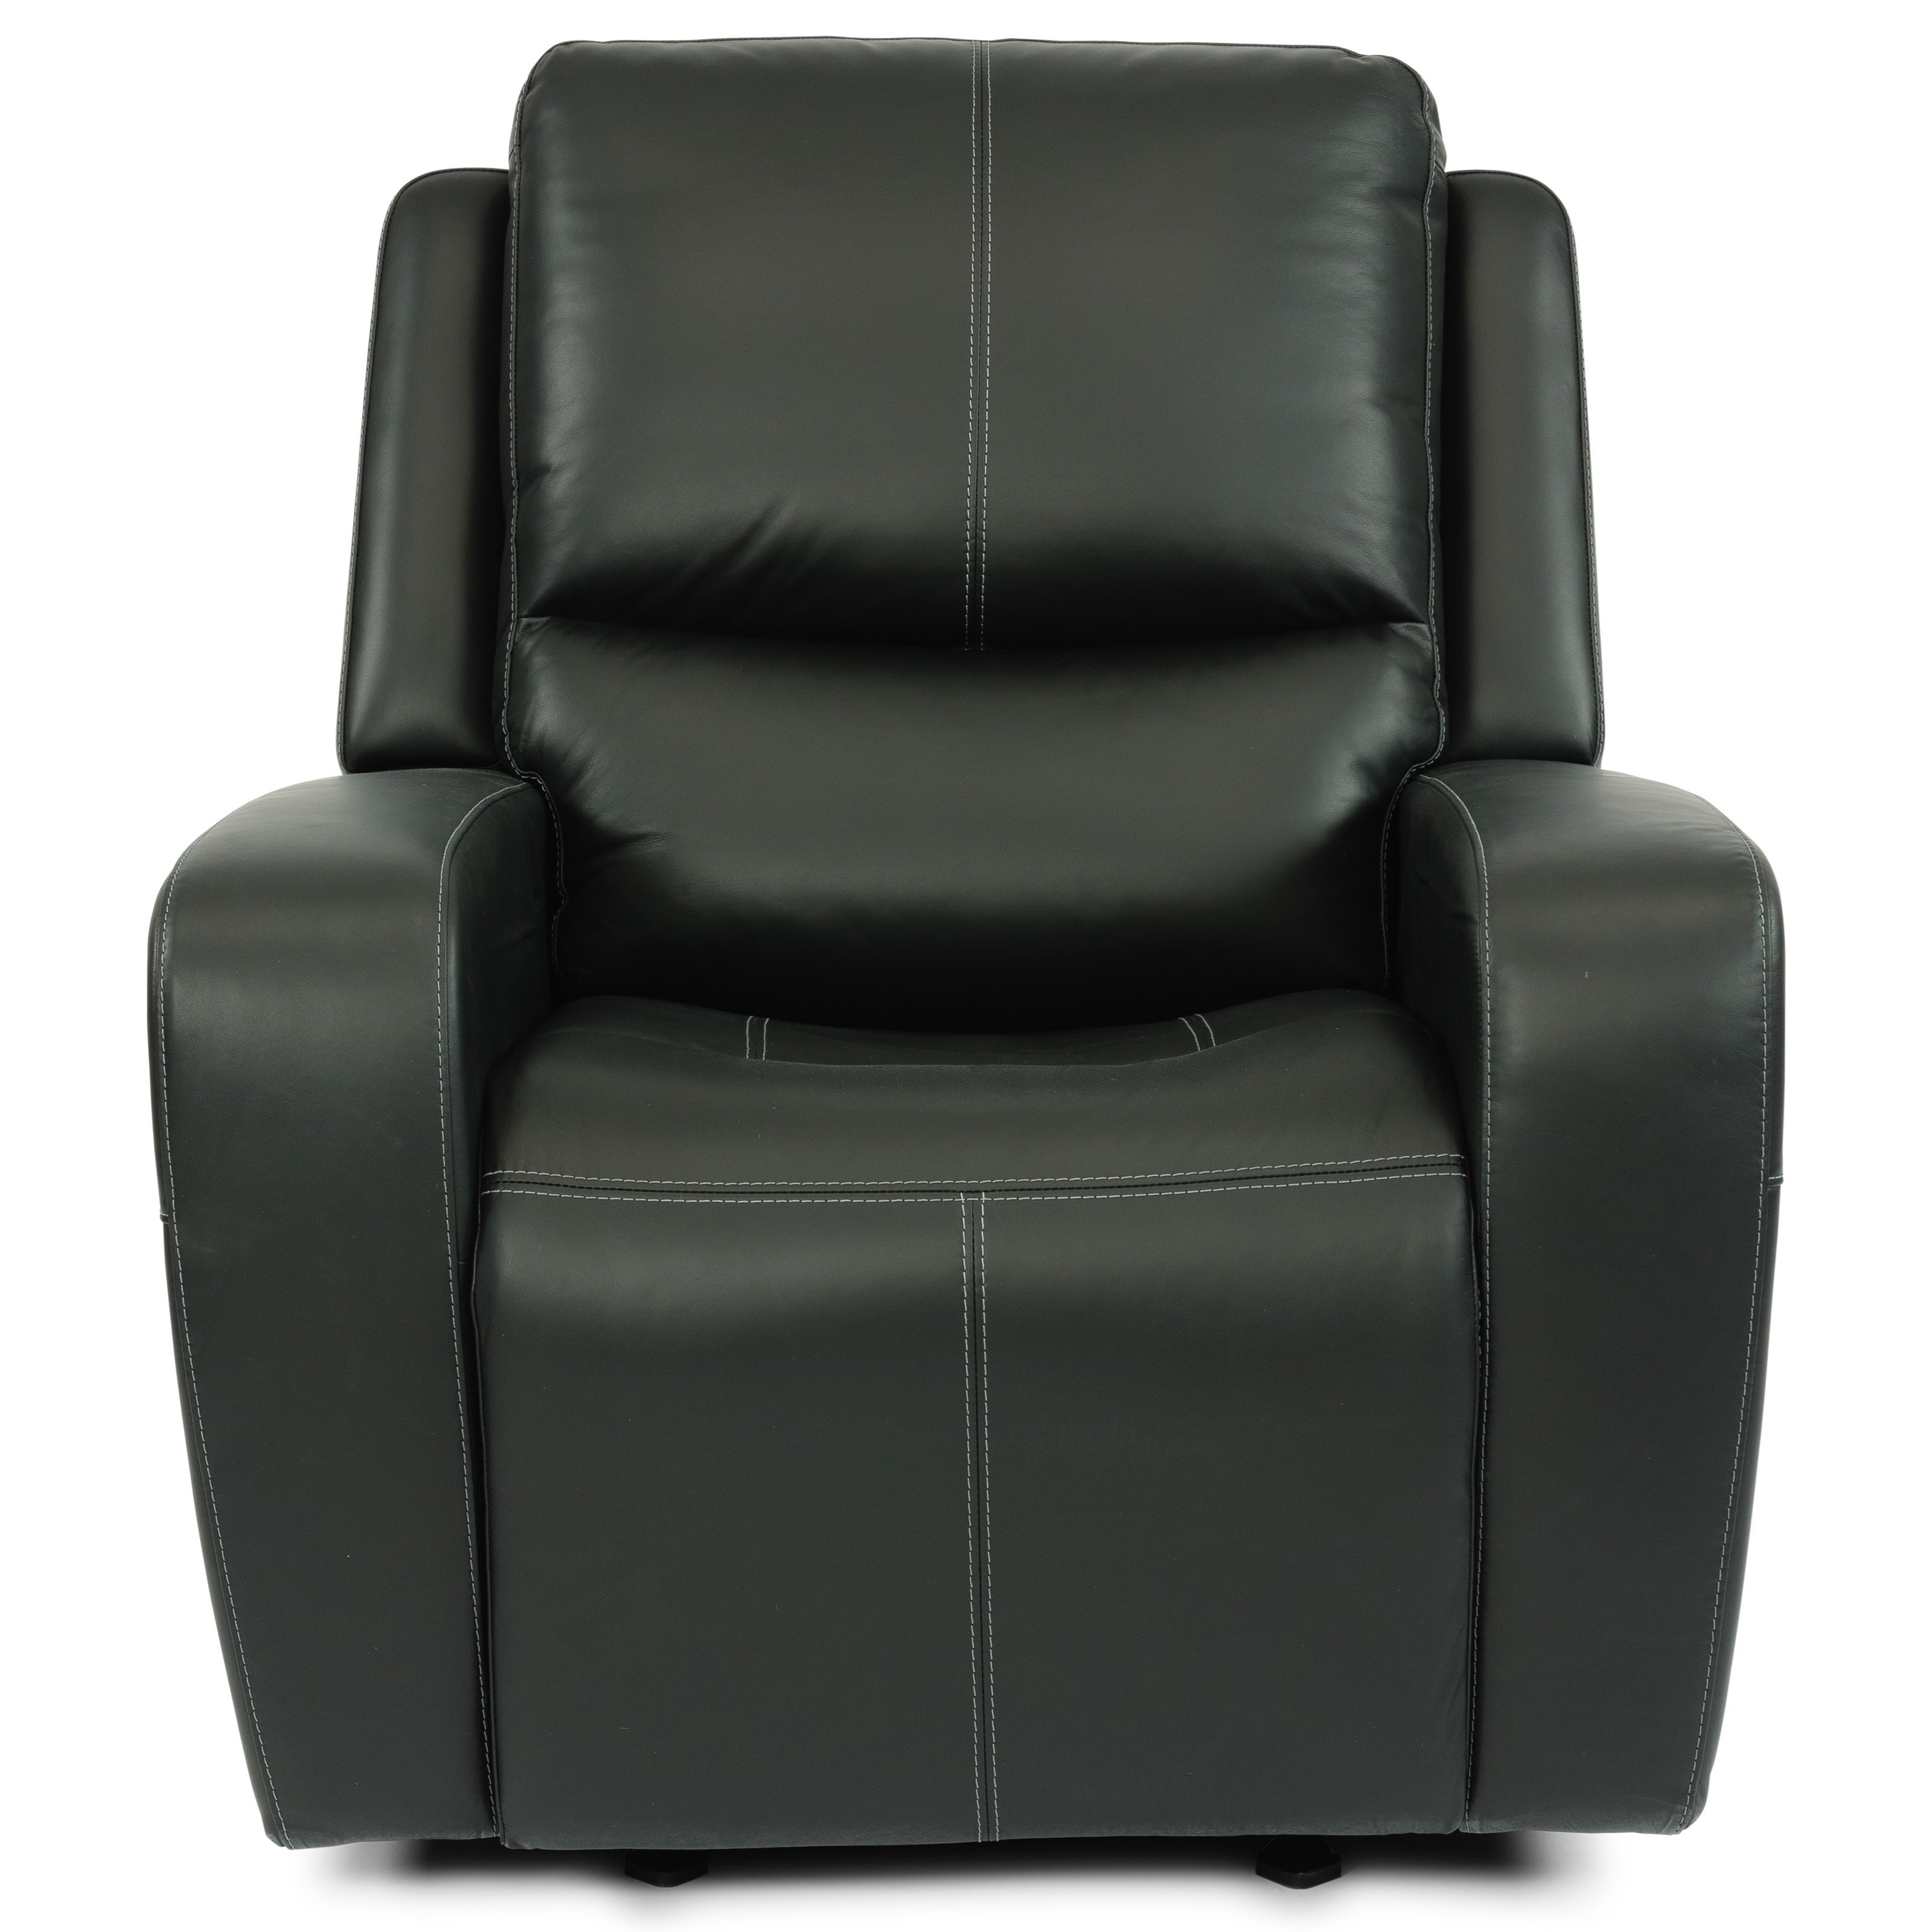 Latitudes - Aiden Power Recliner by Flexsteel at Rooms and Rest